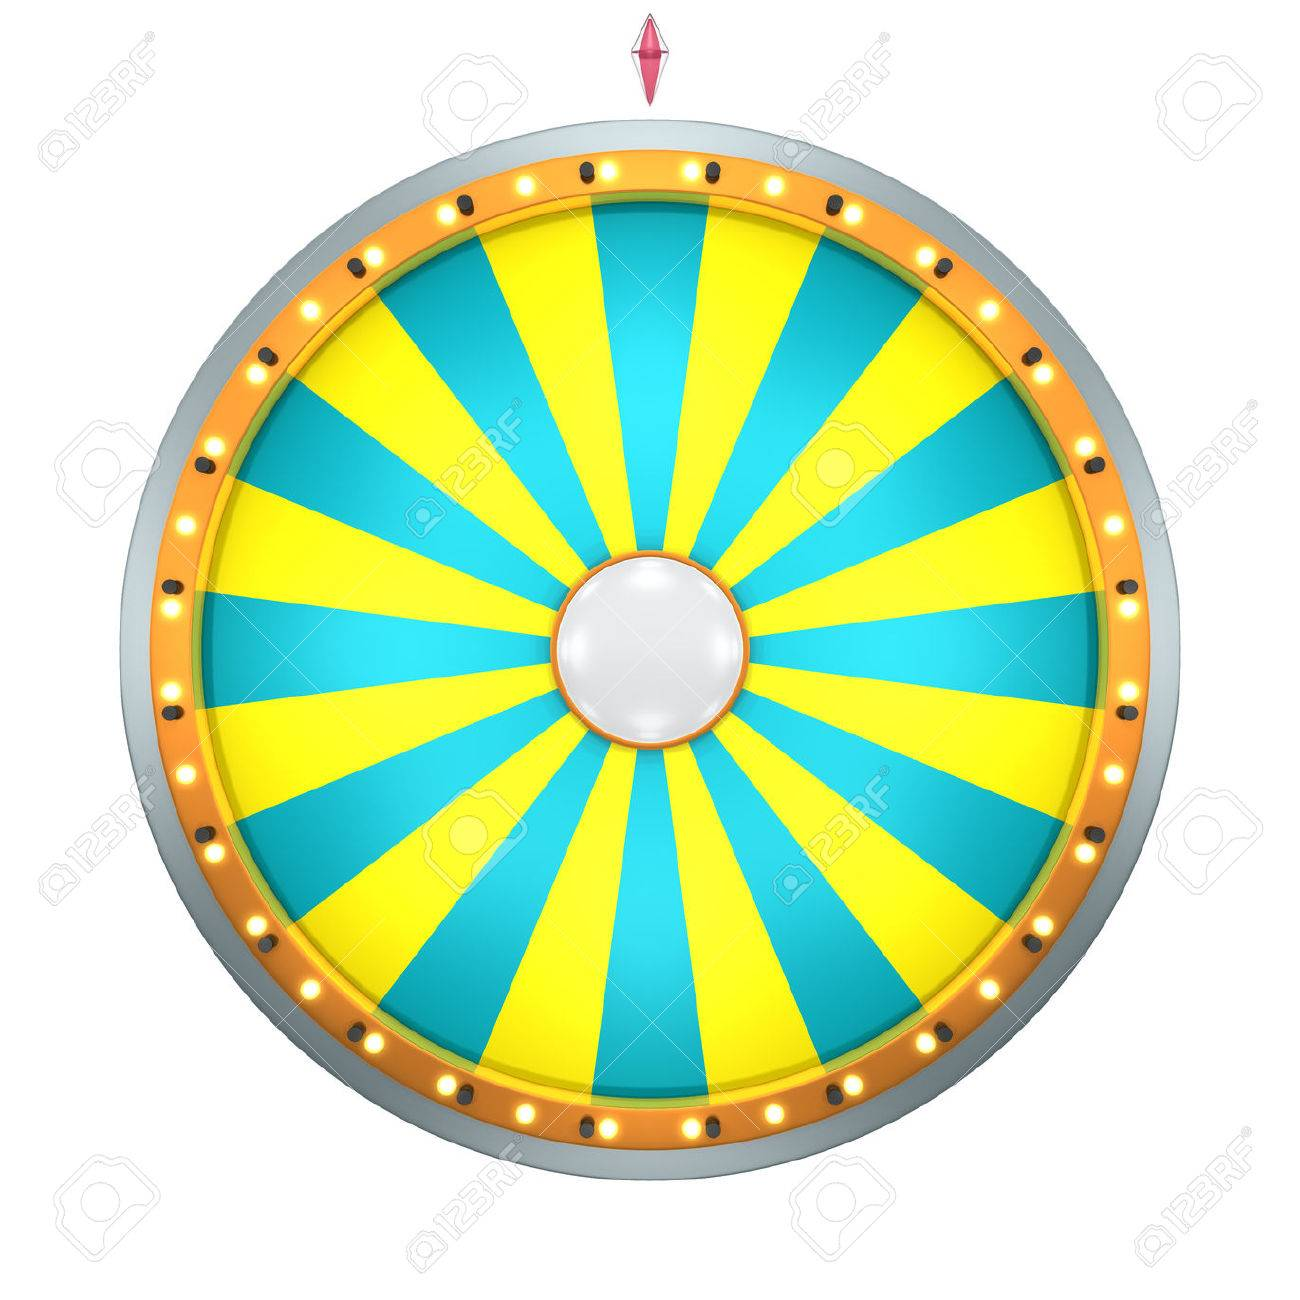 wheel stock images royalty free images u0026 vectors shutterstock, Powerpoint templates